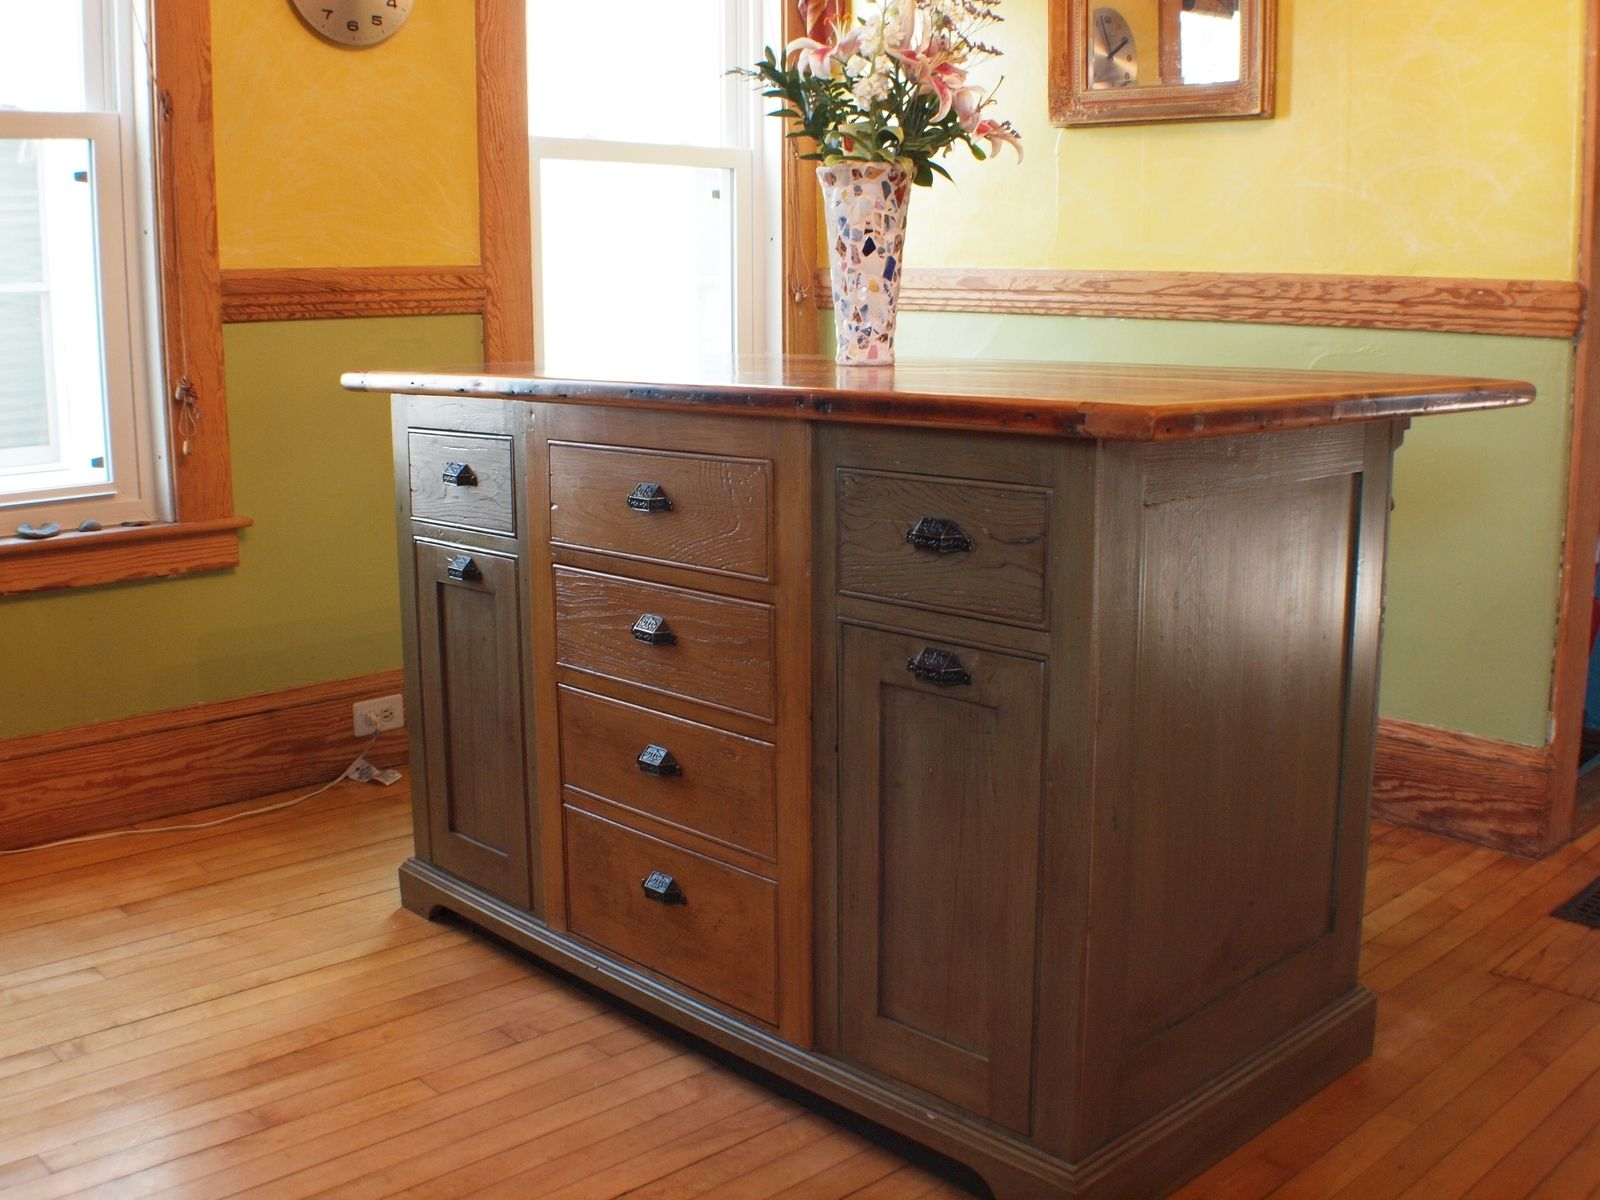 handmade rustic kitchen island with wood top by rustique llc